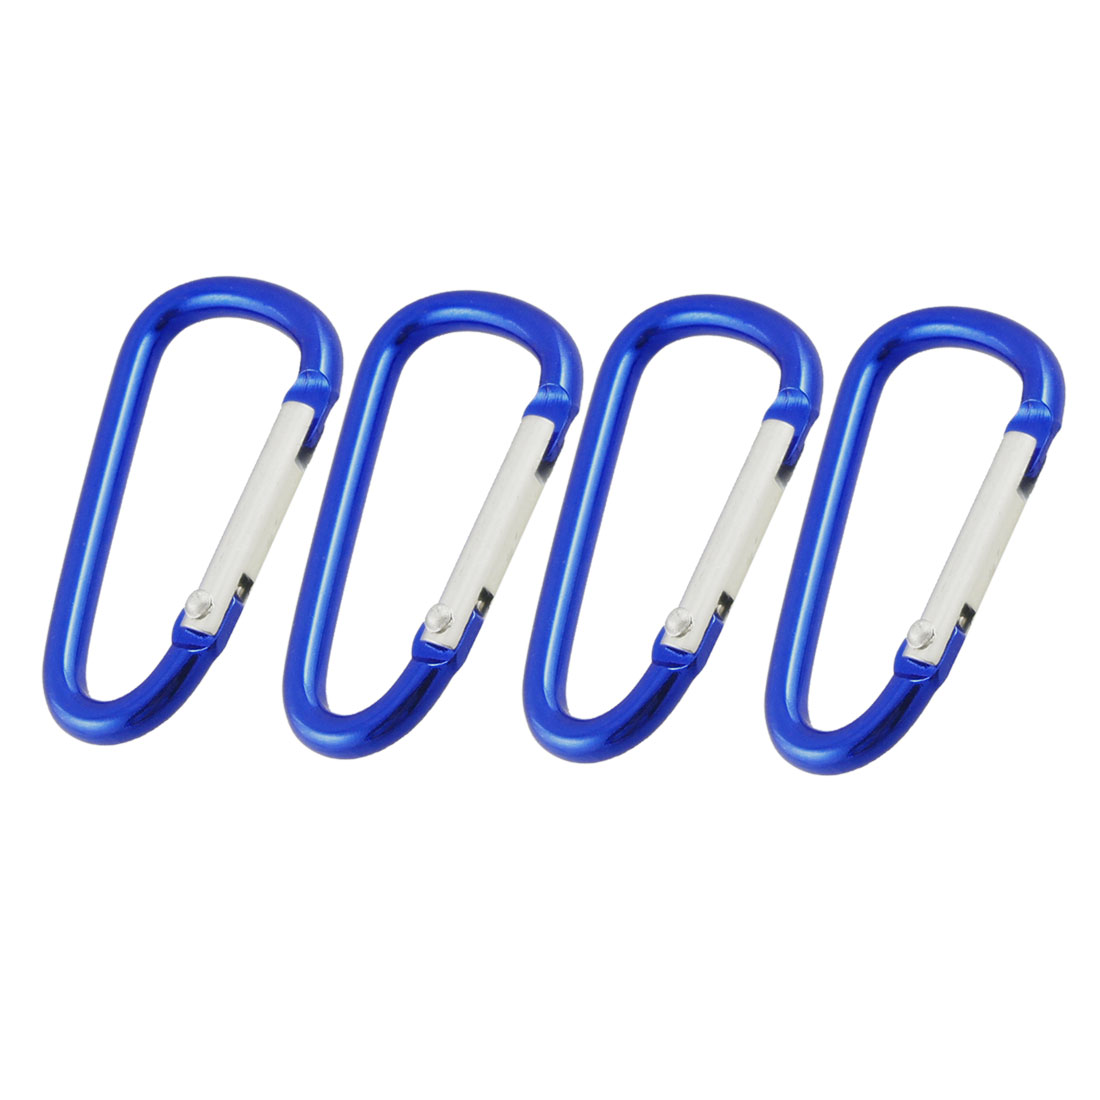 4 Pcs 4.8cm Long Dark Blue Aluminum Alloy Carabiners for Camping Hiking